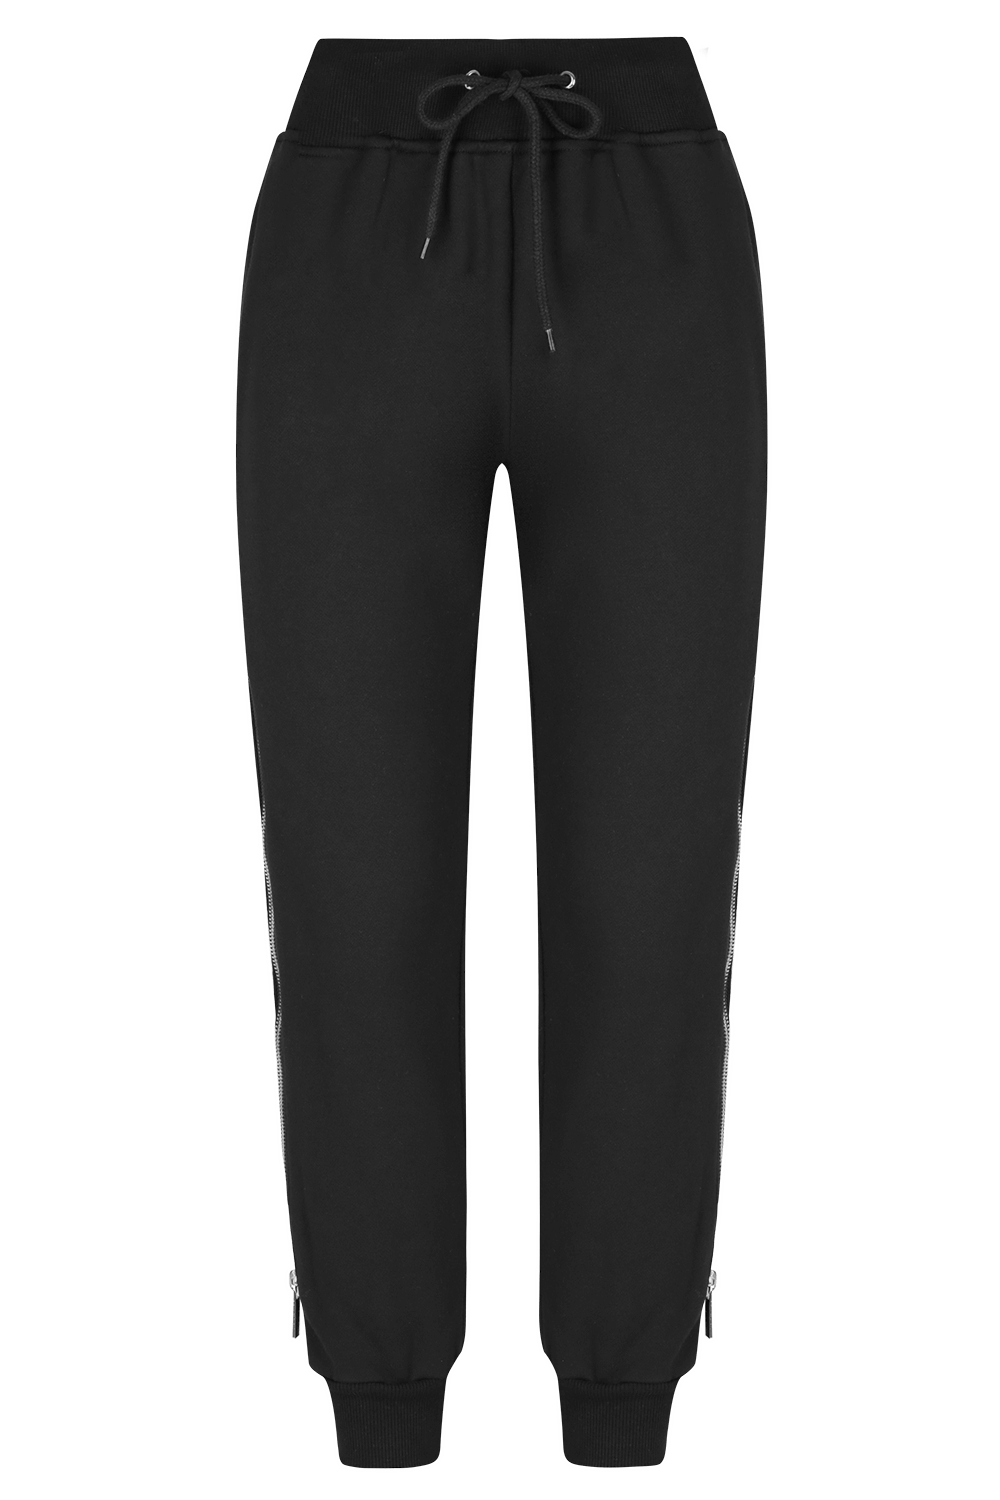 SLIDE AWAY Jogger Pants - BLK/PLTNM | HAUS OF SONG